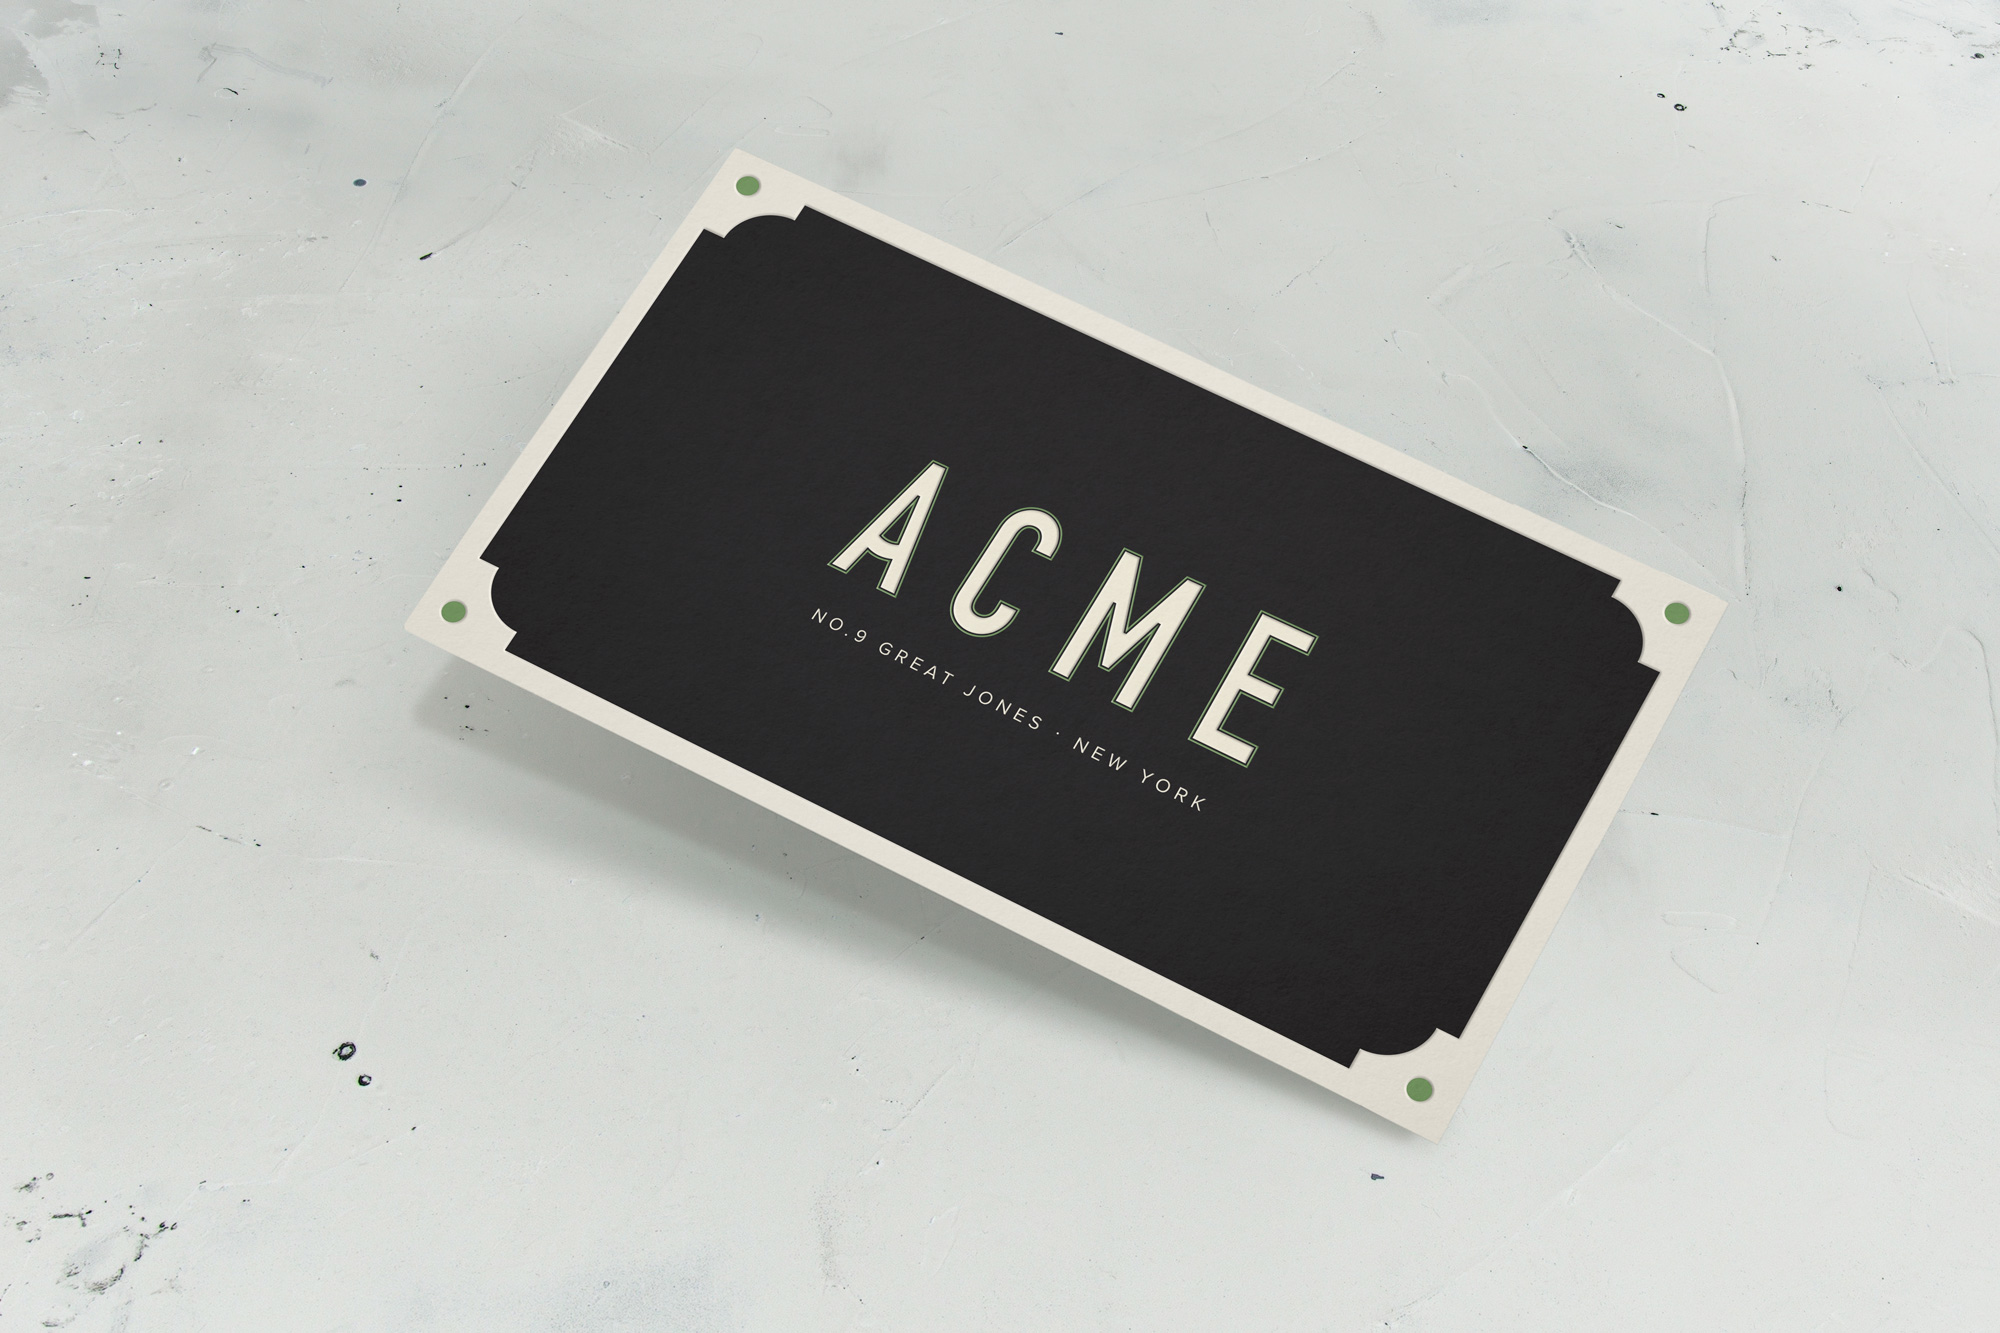 elsa-jenna-acme-restaurant-businesscard